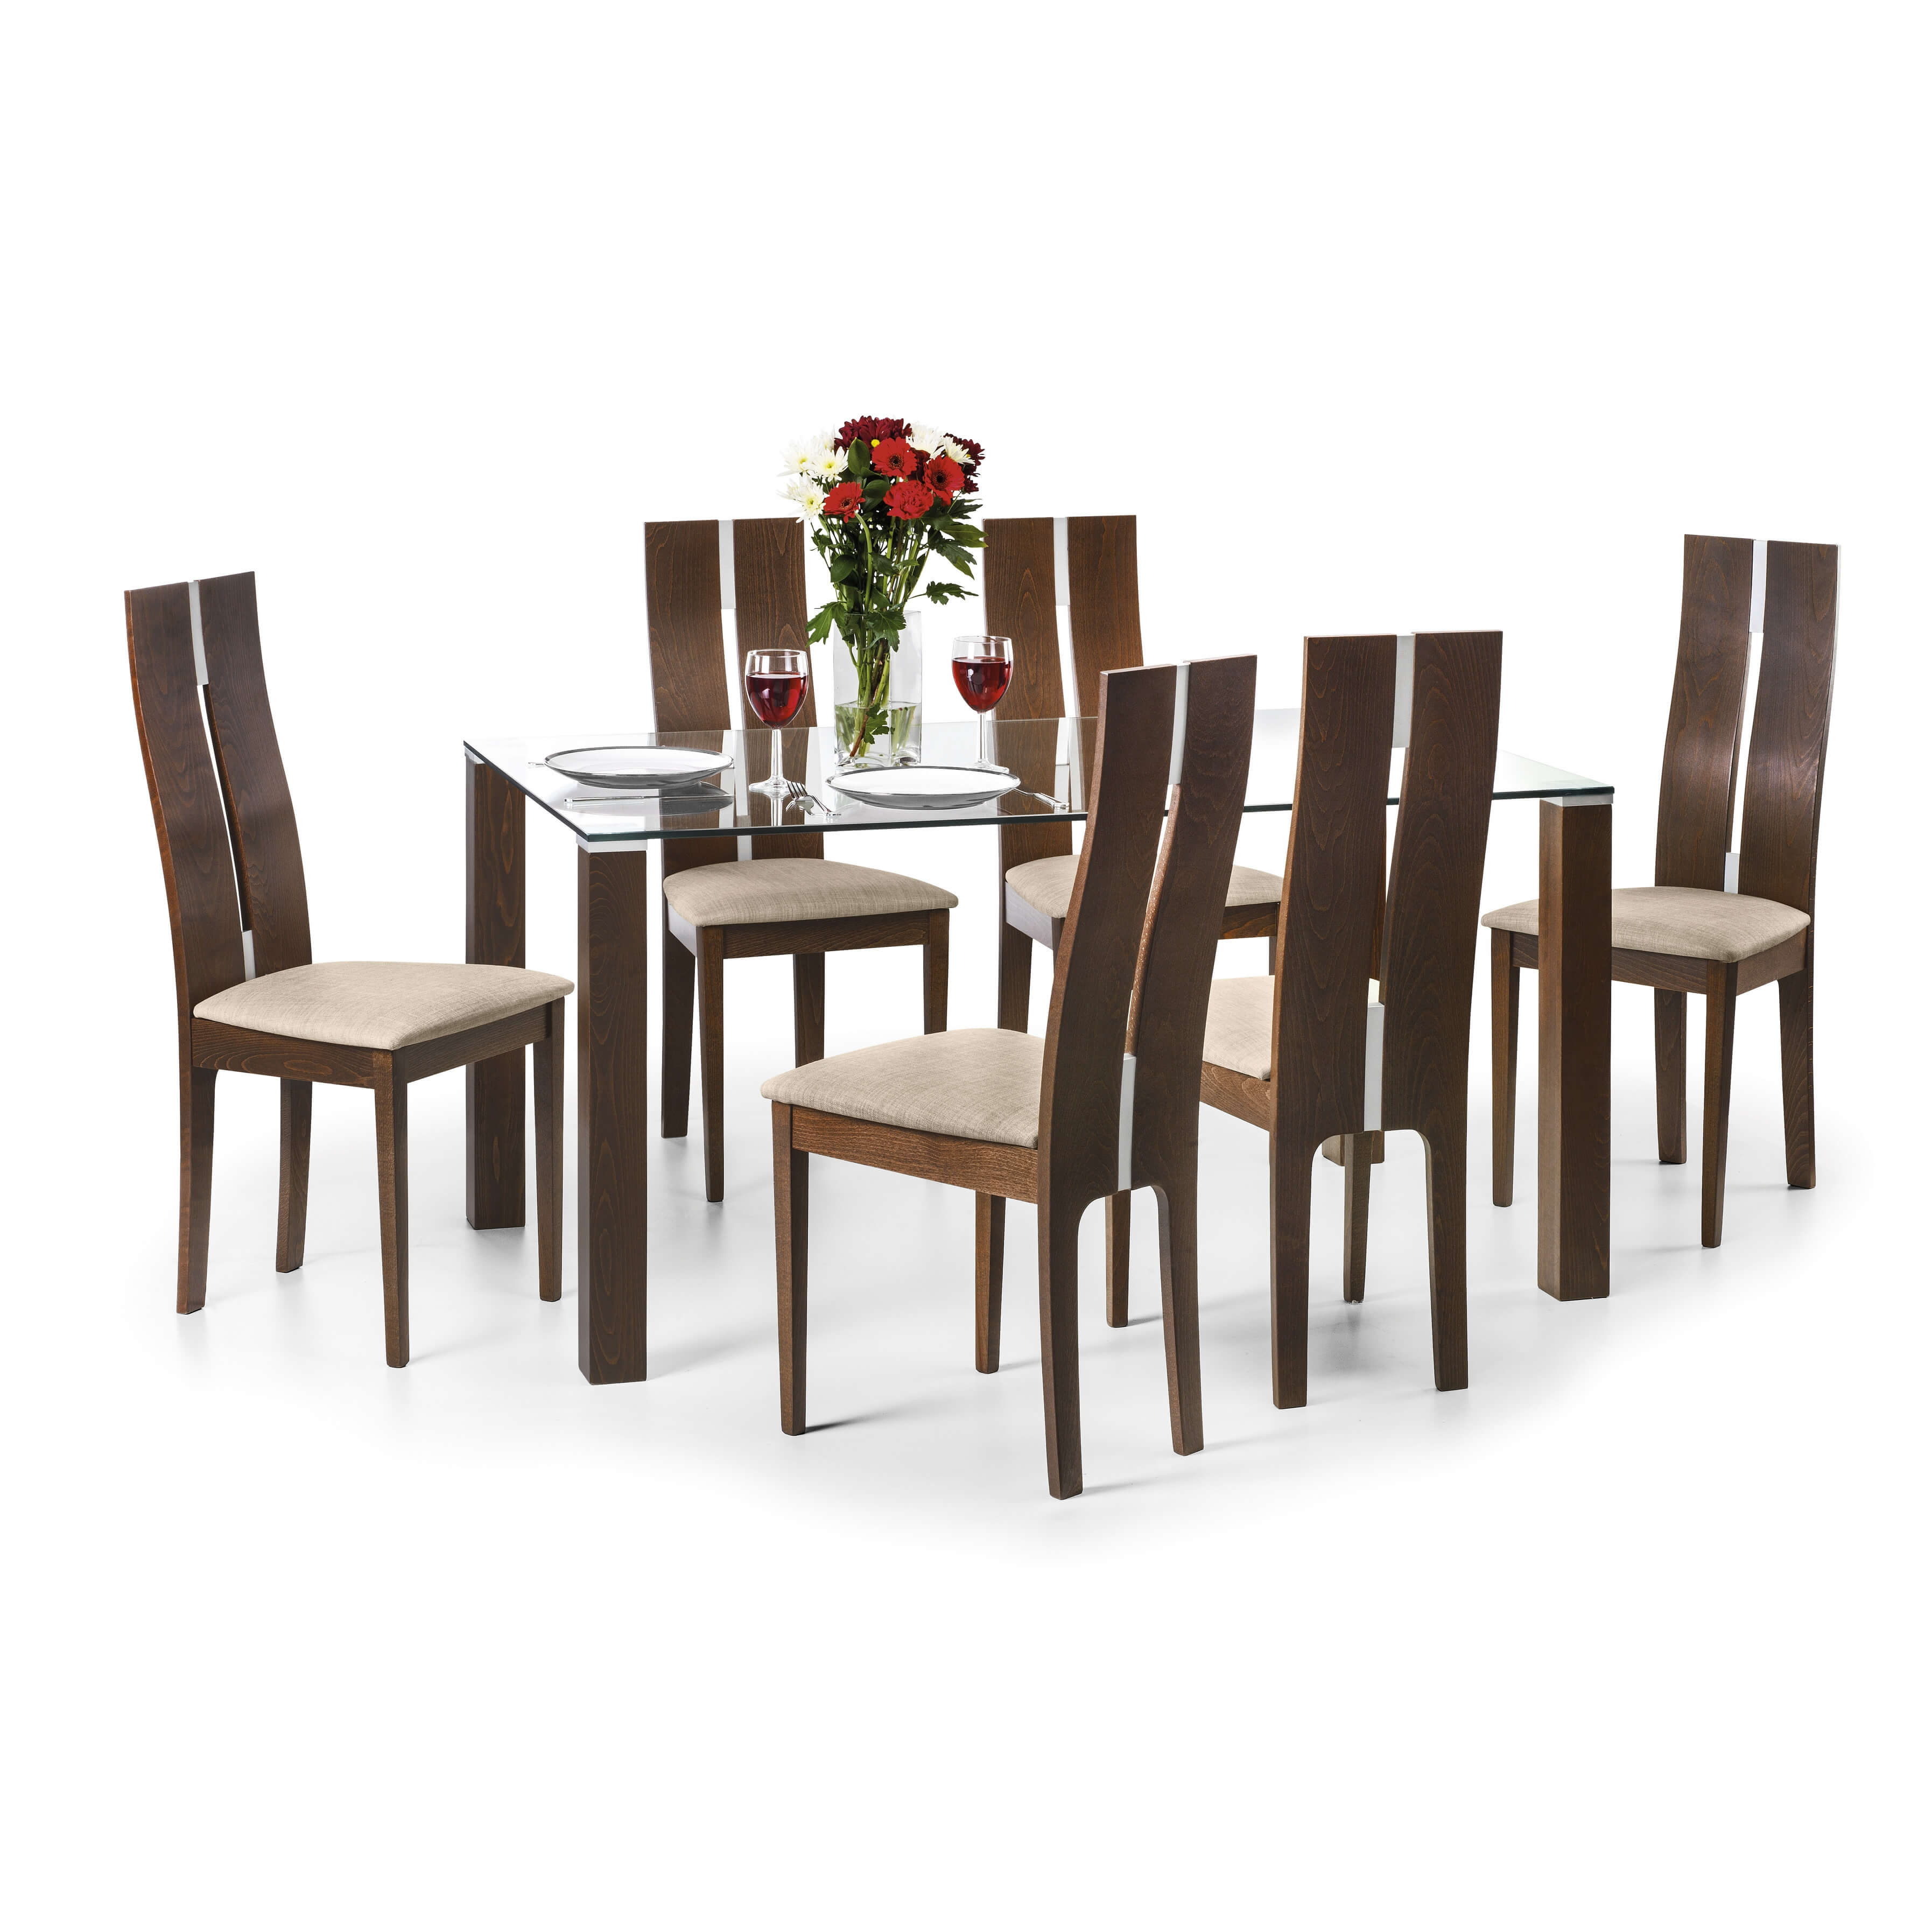 https://www.firstfurniture.co.uk/pub/media/catalog/product/c/a/cayman-dining-table-and-6-cayman-chairs-cay801.jpg